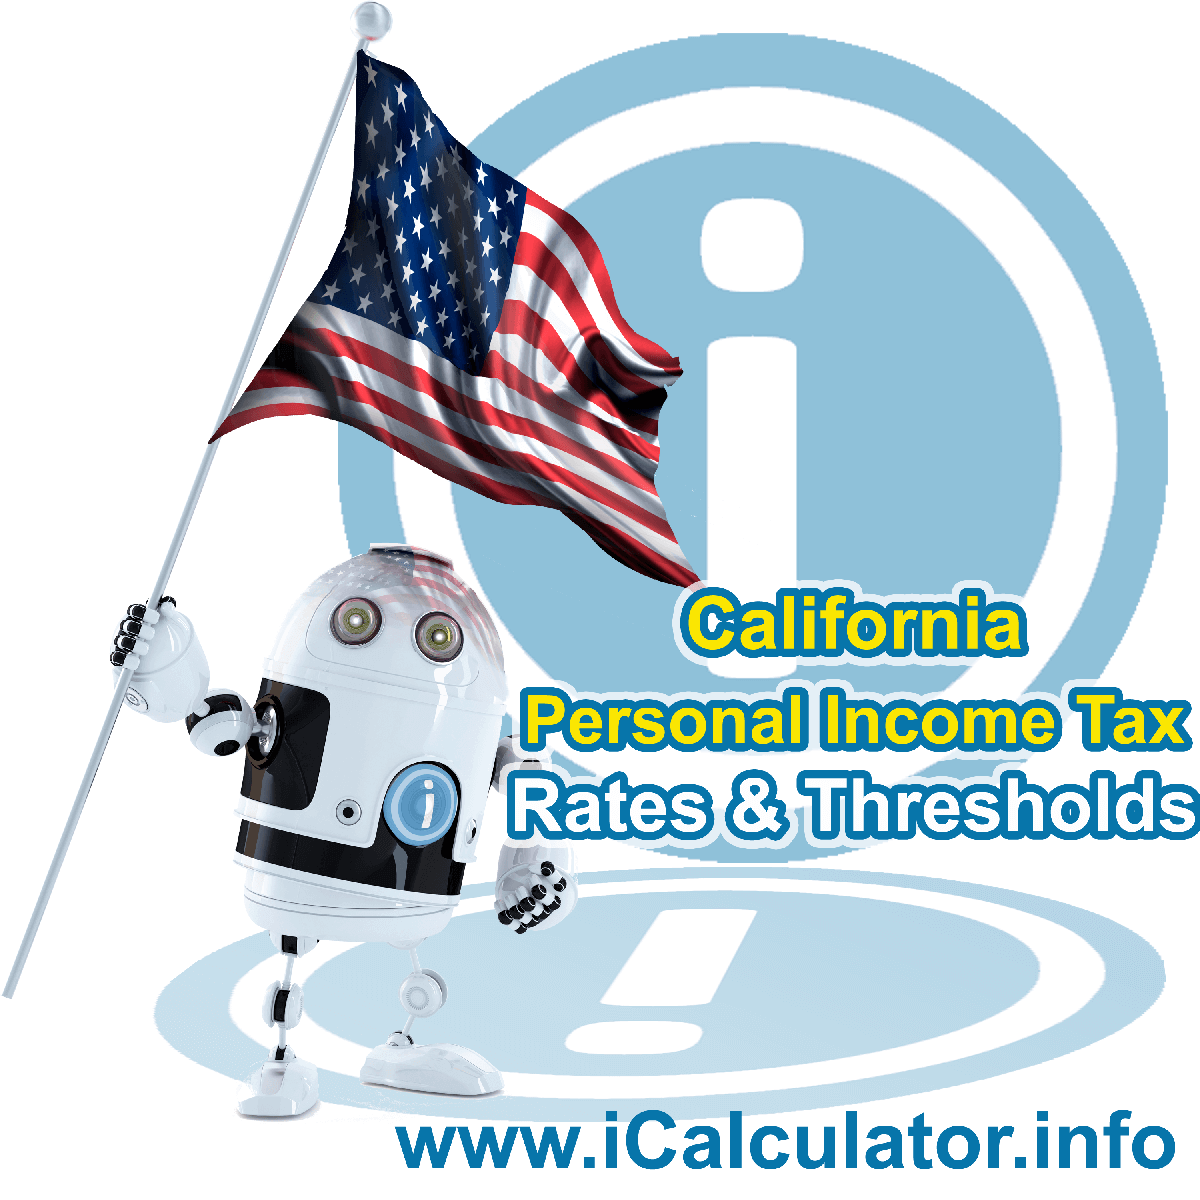 California State Tax Tables 2016. This image displays details of the California State Tax Tables for the 2016 tax return year which is provided in support of the 2016 US Tax Calculator